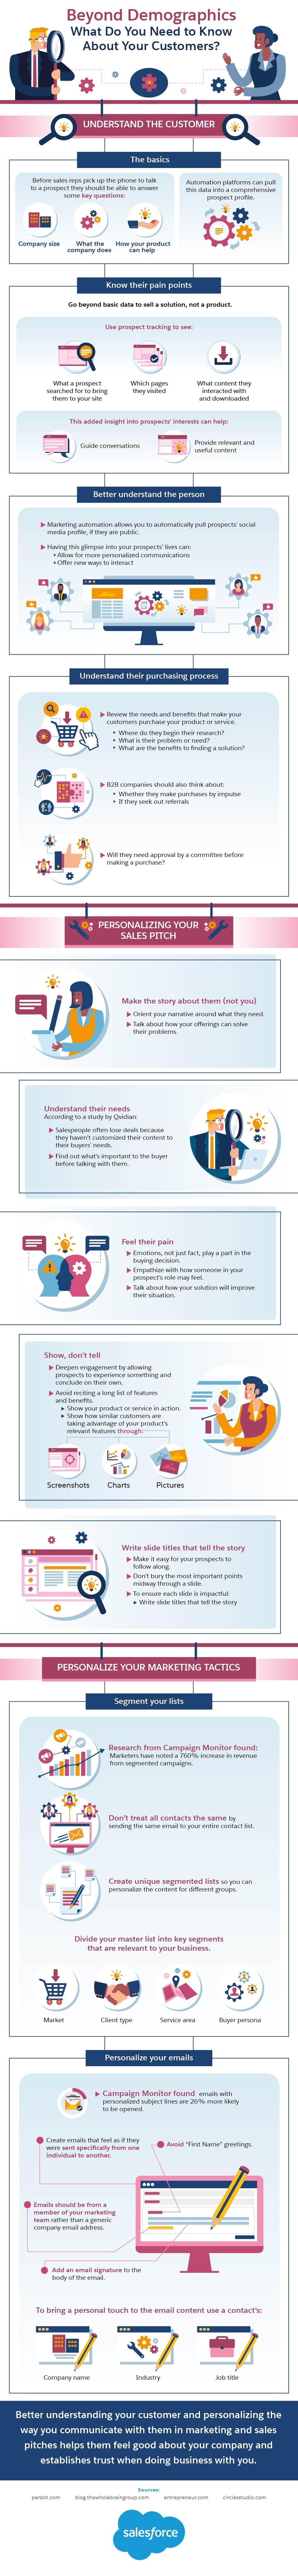 Beyond Demographics: What Do You Need to Know About Your Customers [infographic]